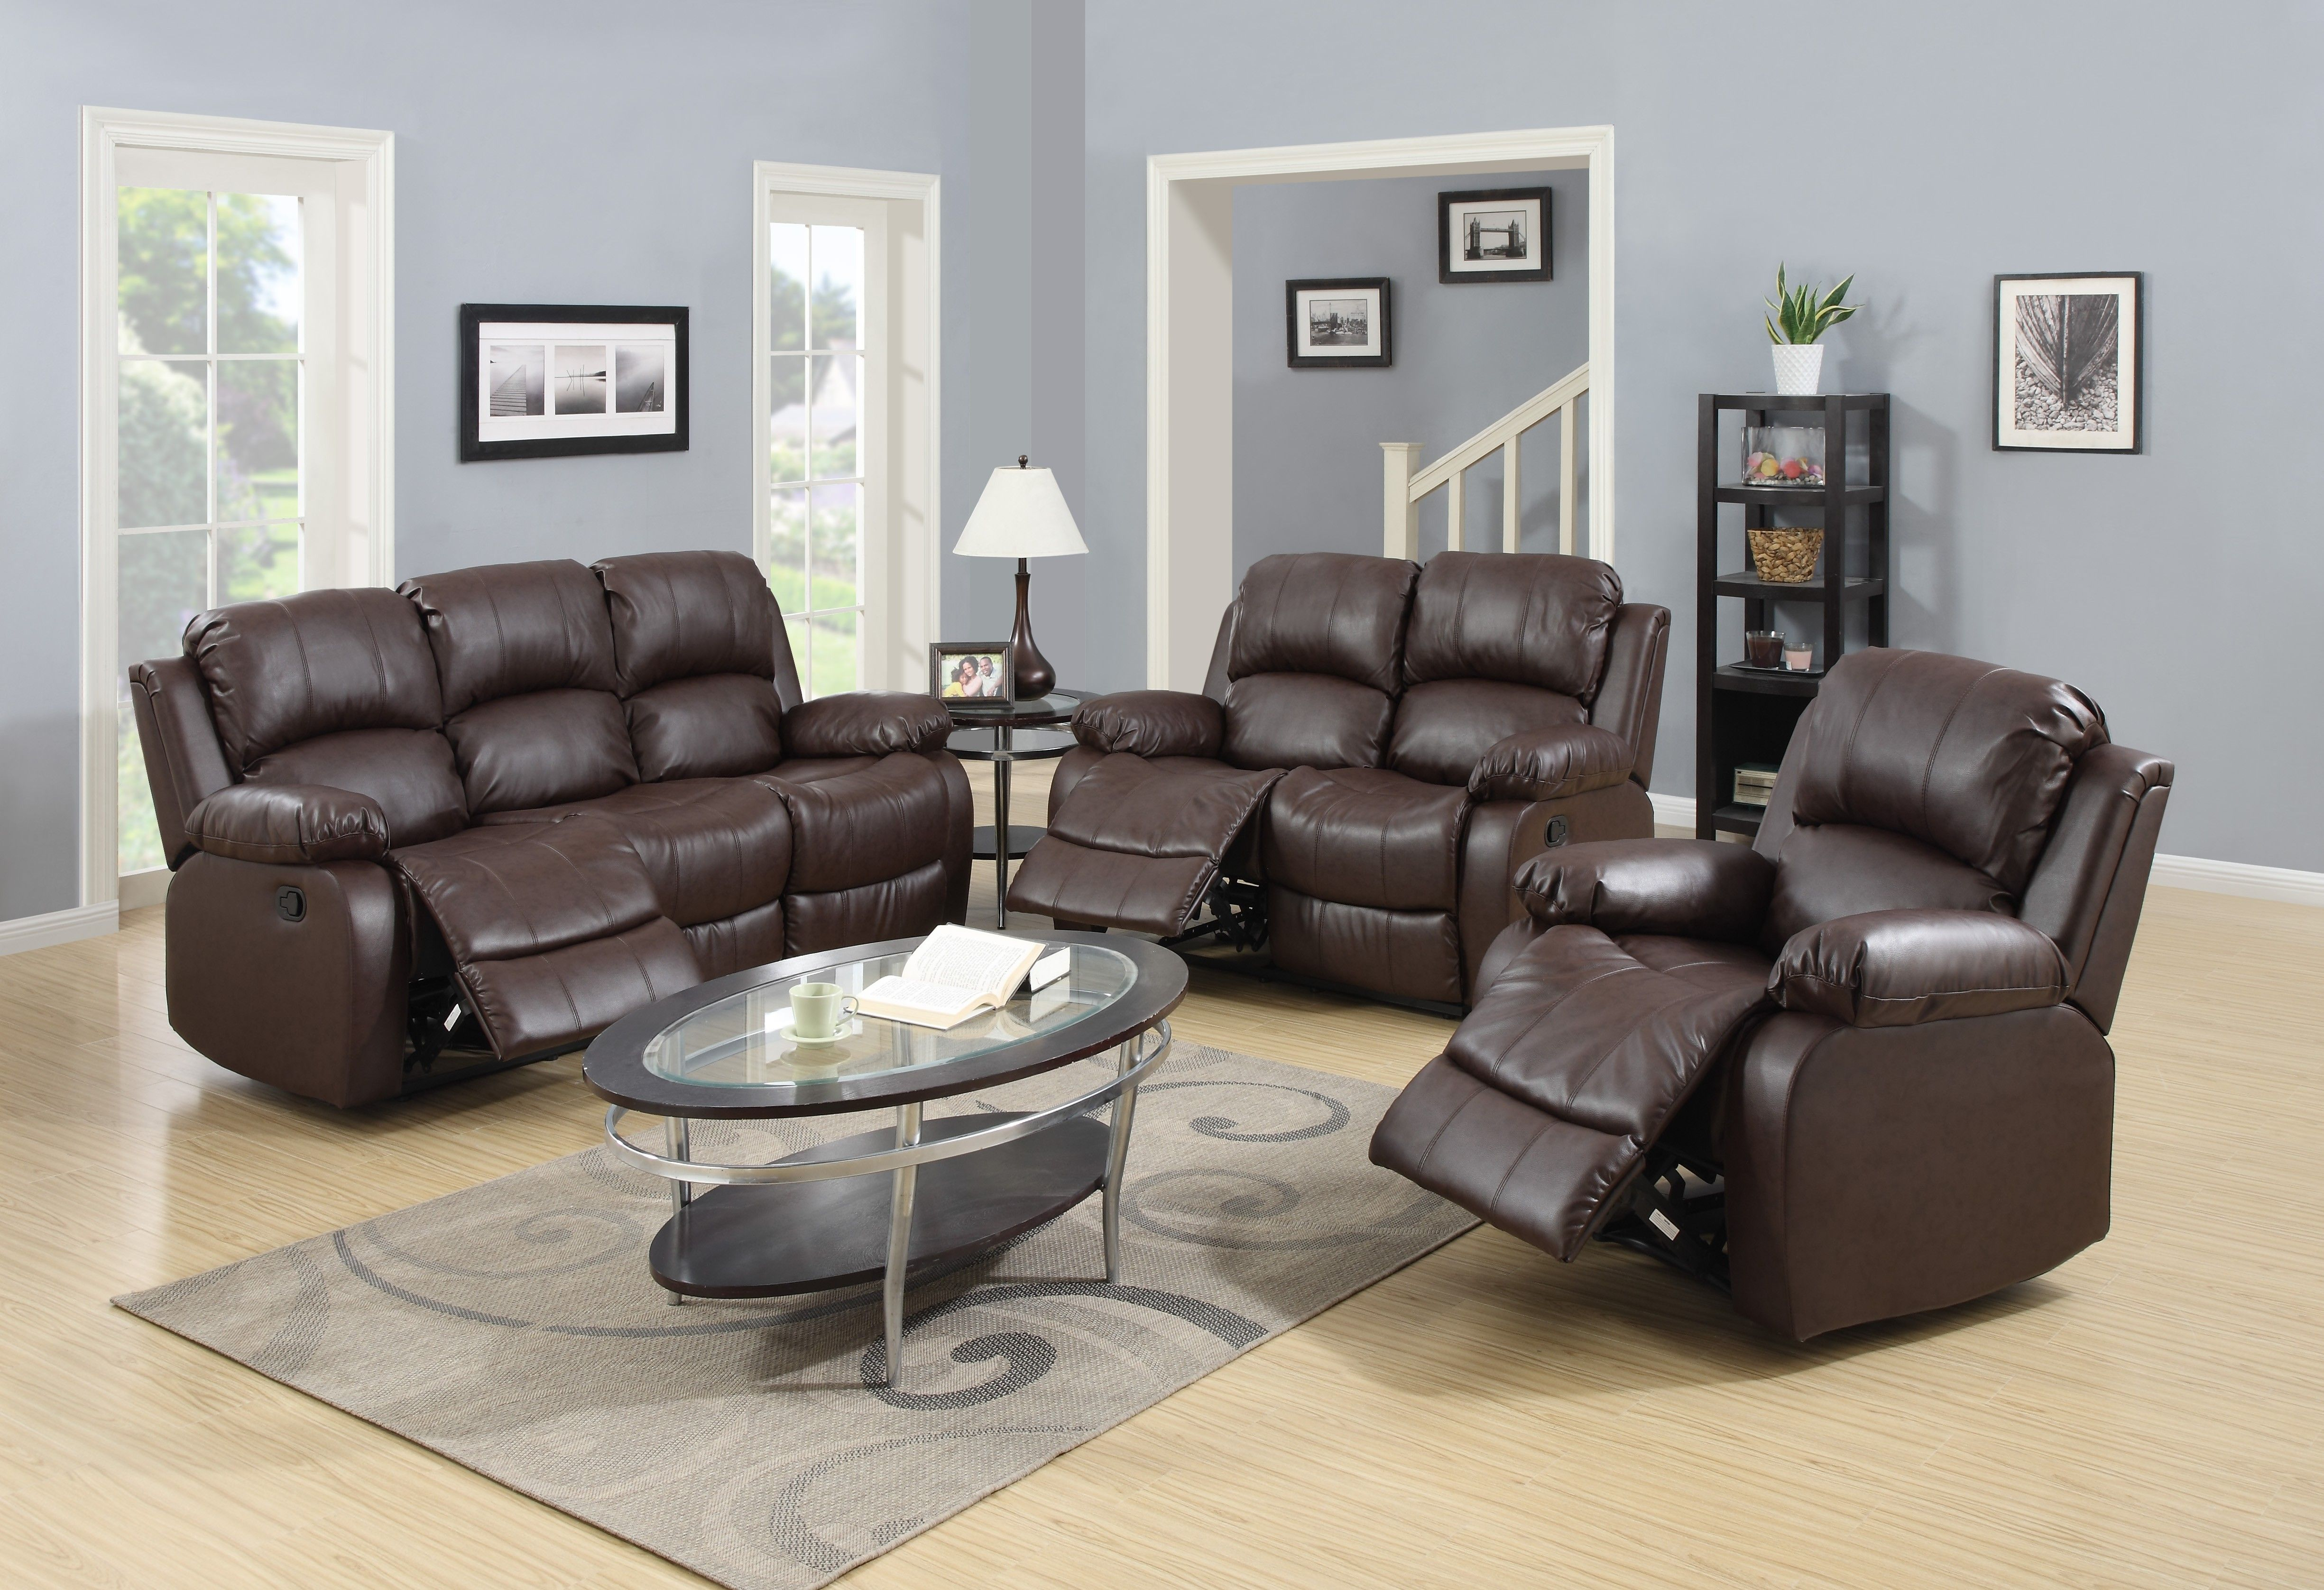 Cool Sears Reclining Sofa Beautiful 33 For Your Living Room Inspiration